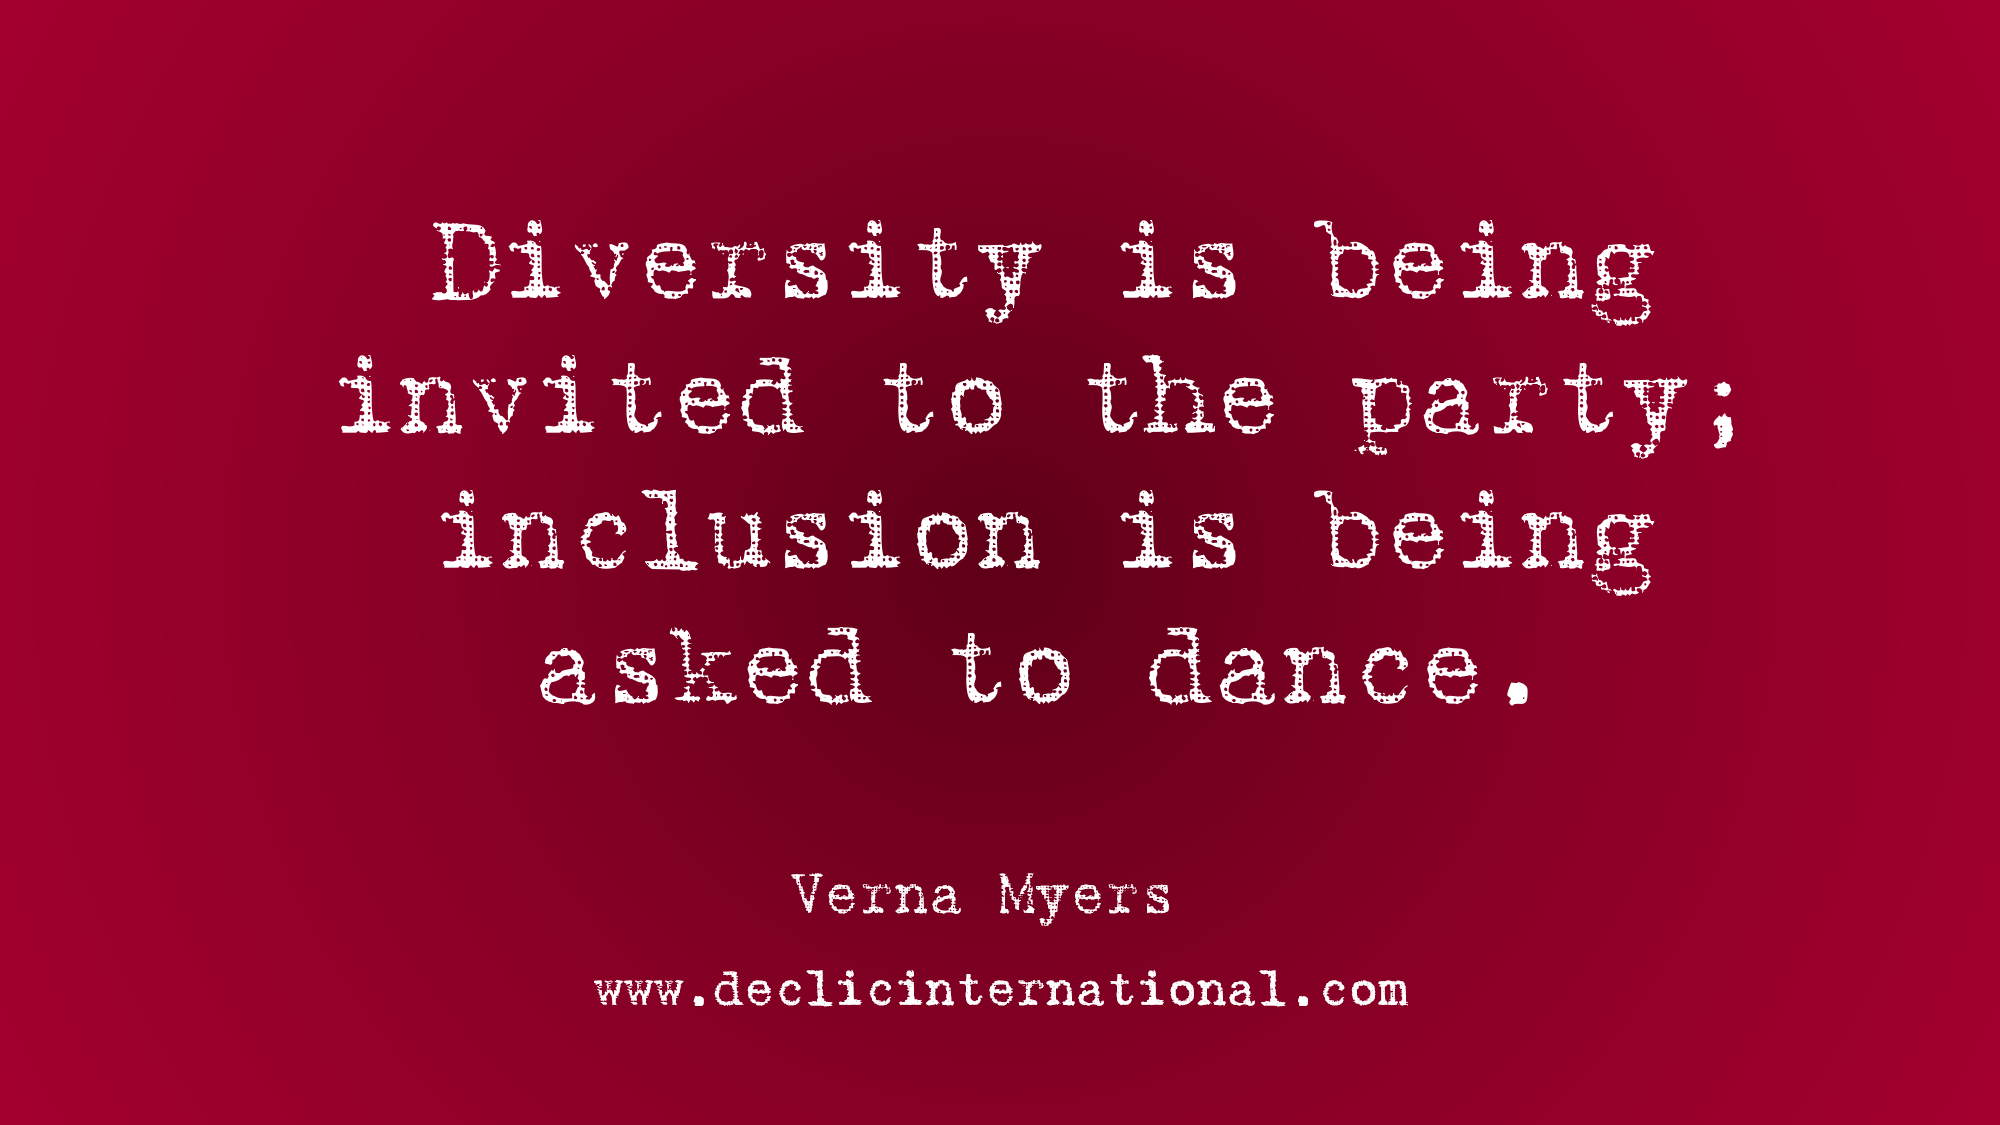 Diversity And Inclusion Quotes Entrancing Diversity Is Being Invited To The Party  Déclic International